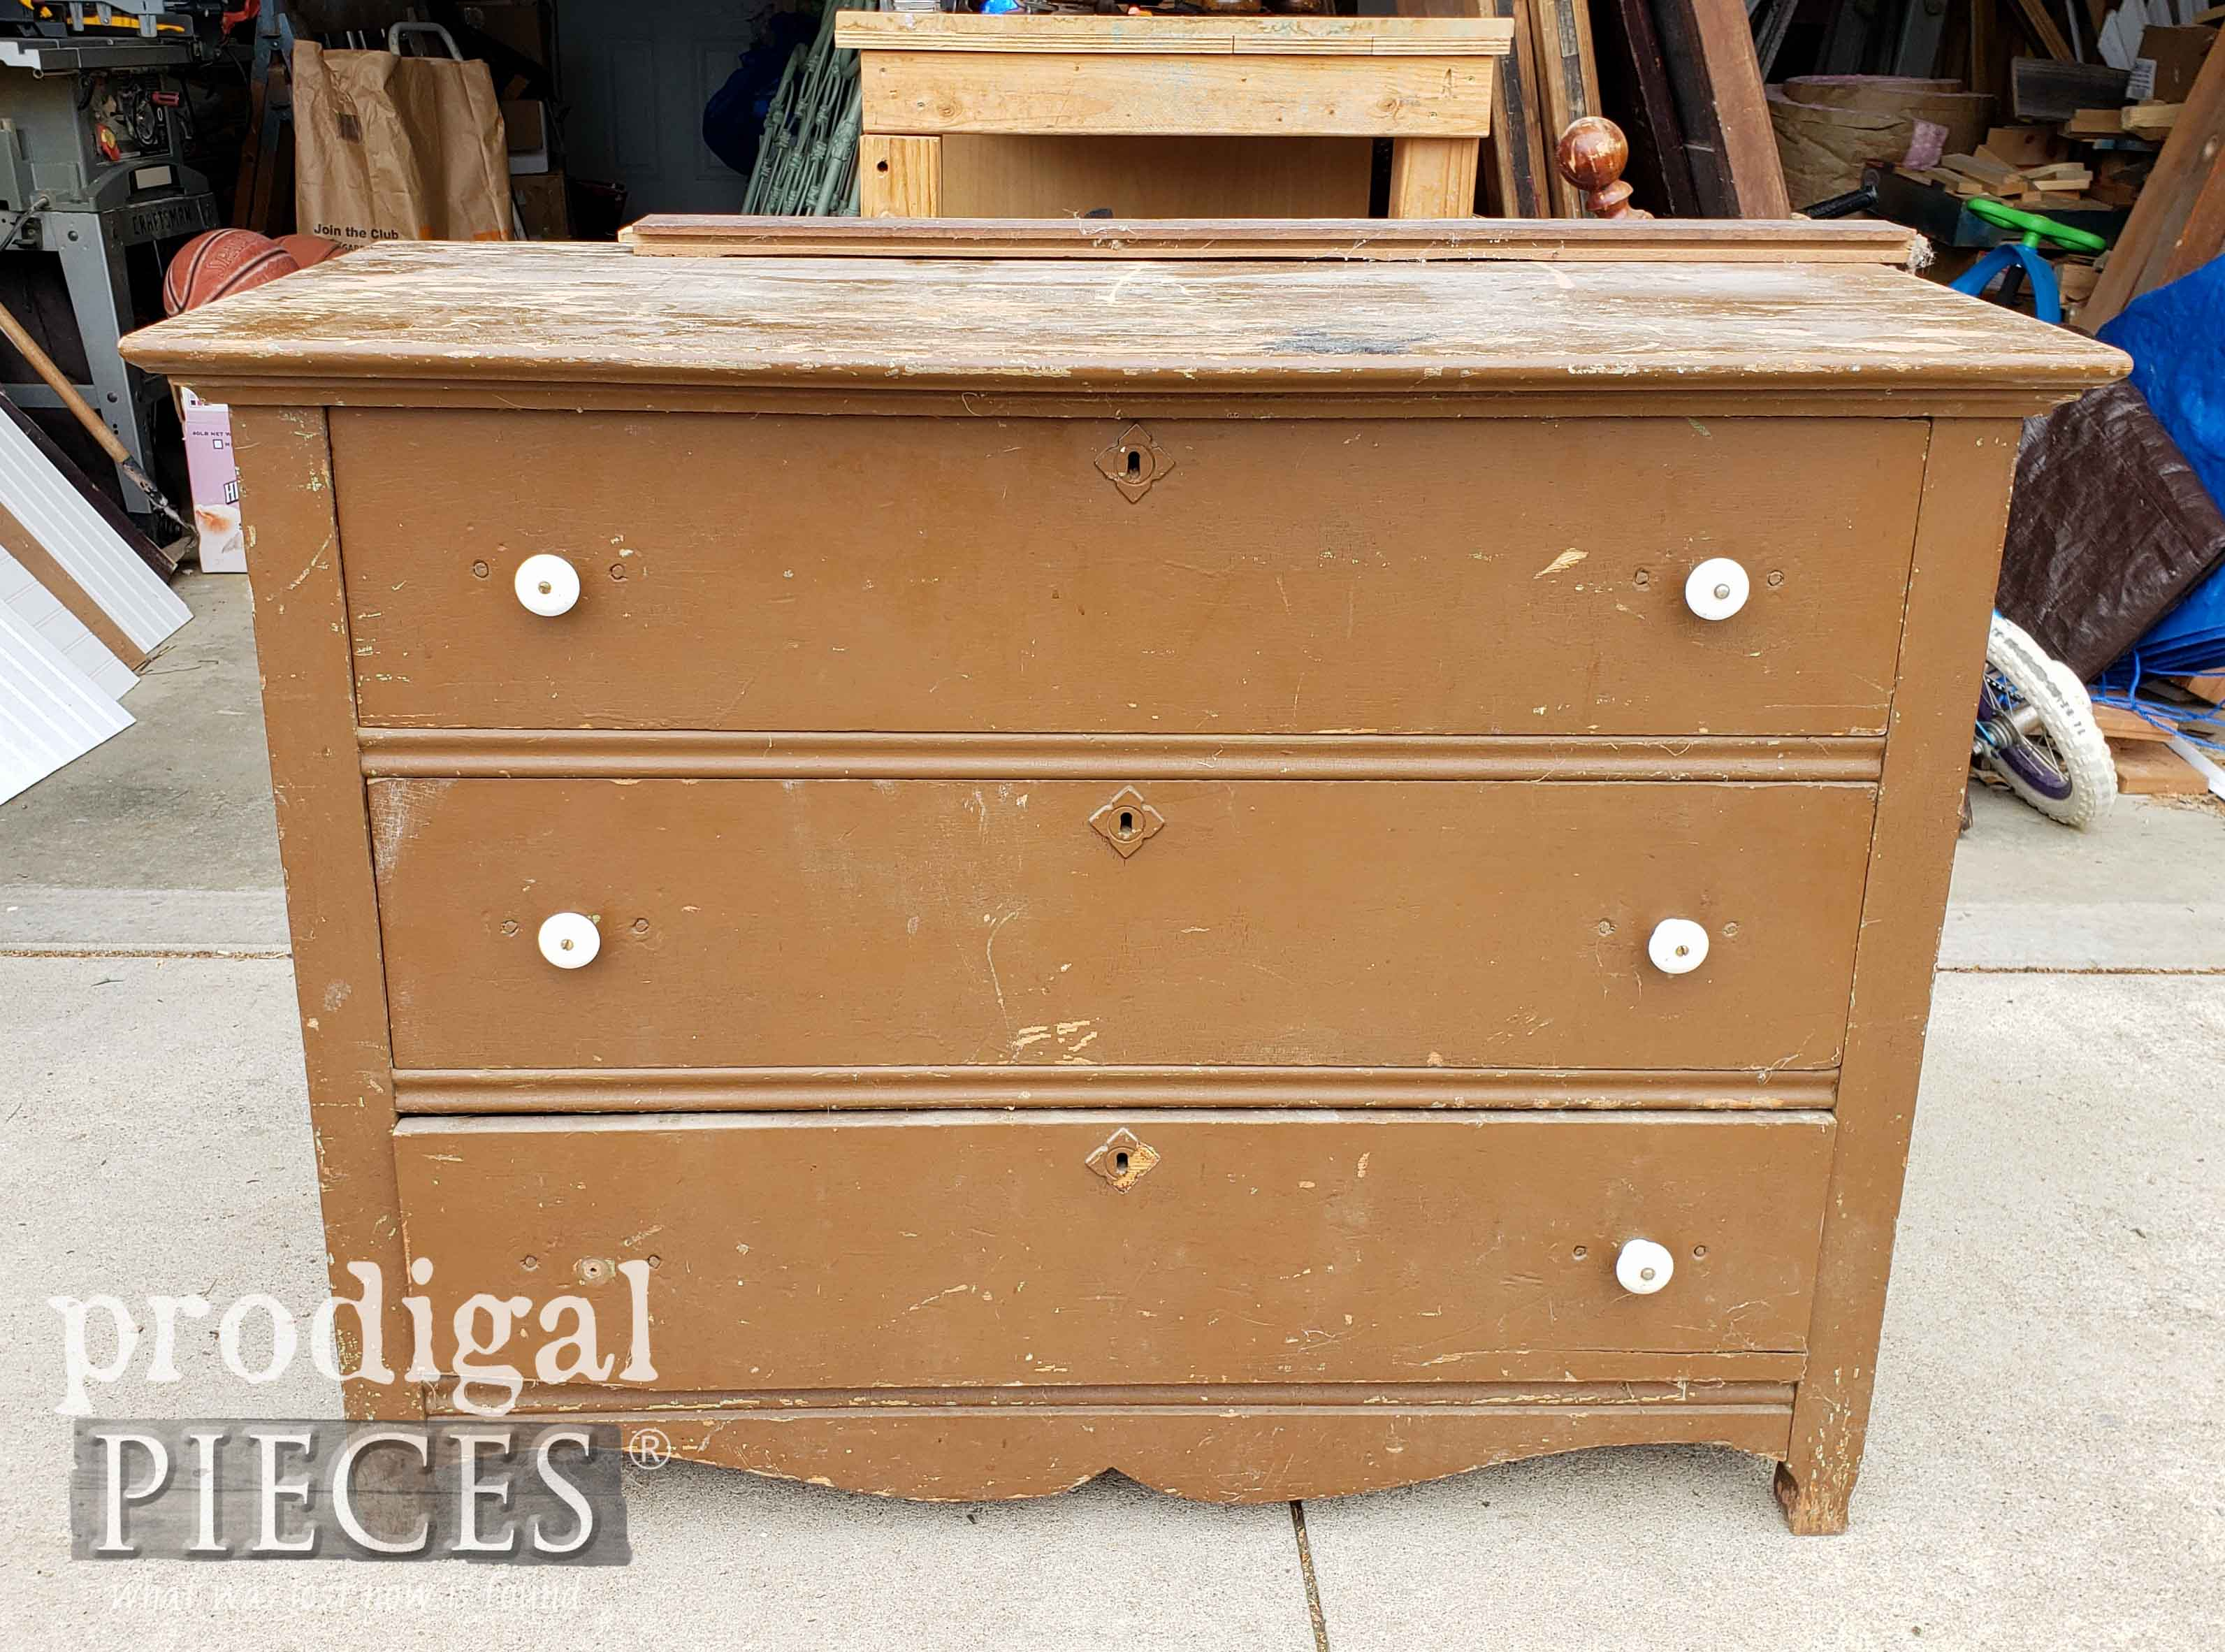 Roadside Antique Chest of Drawers Found by Larissa of Prodigal Pieces | prodigalpieces.com